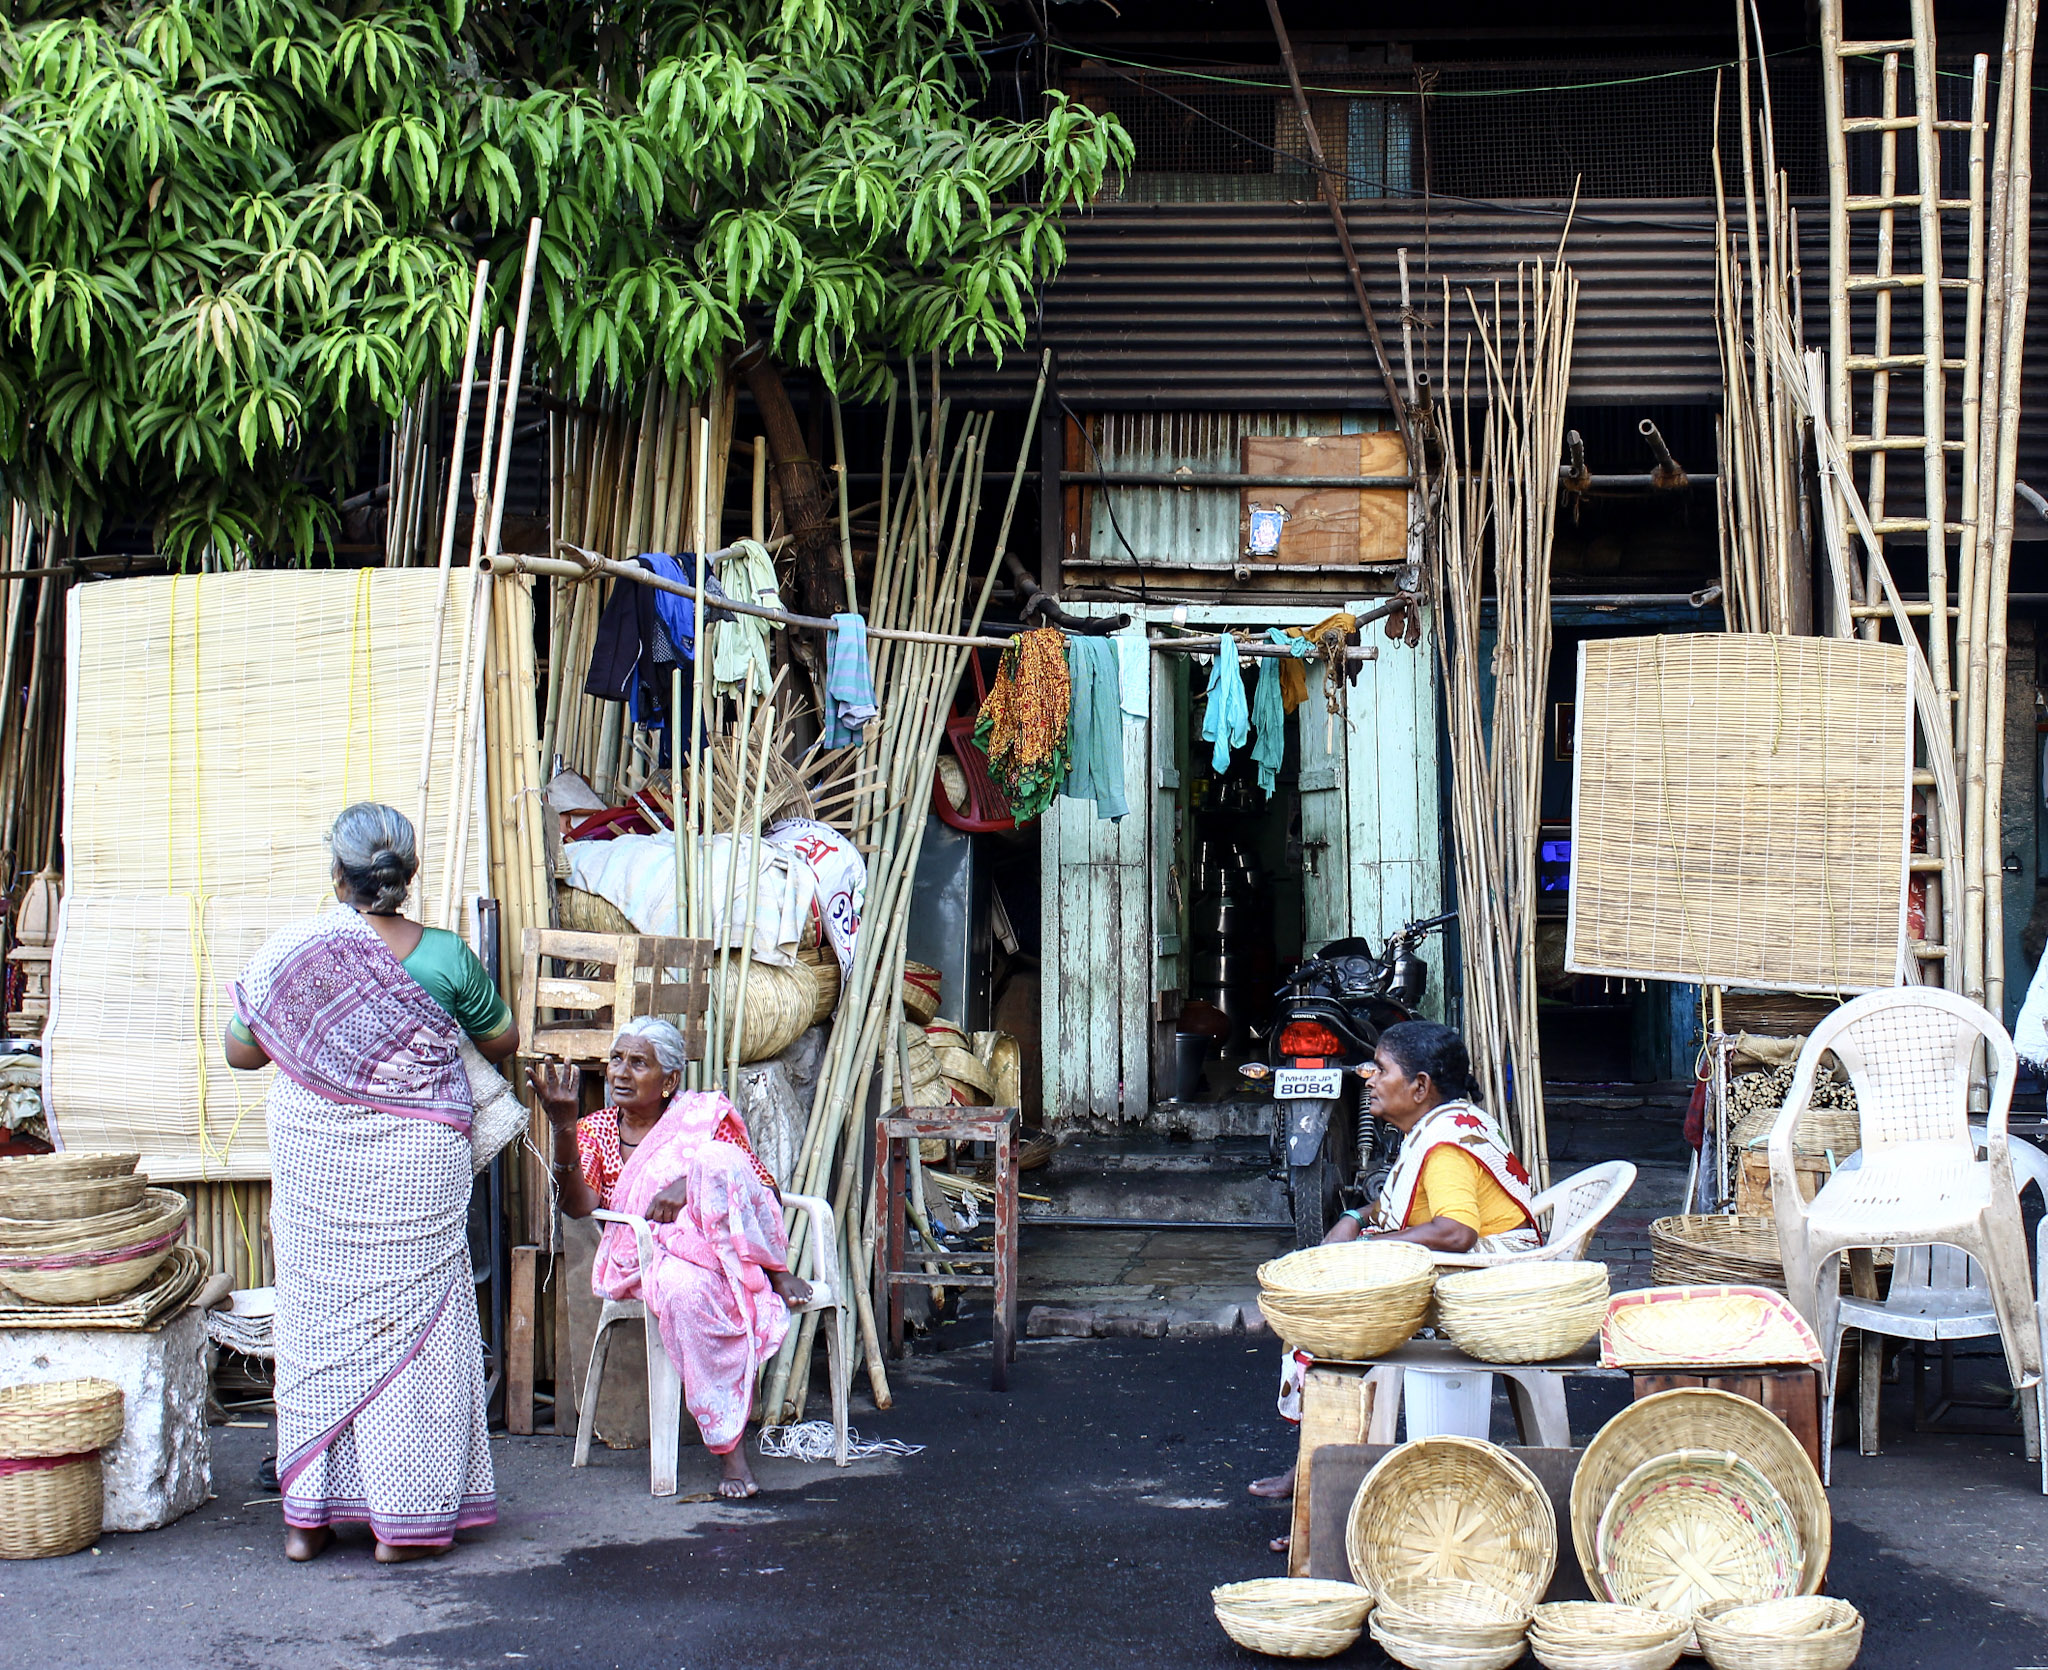 The women of Burud Ali. The cane market of Pune